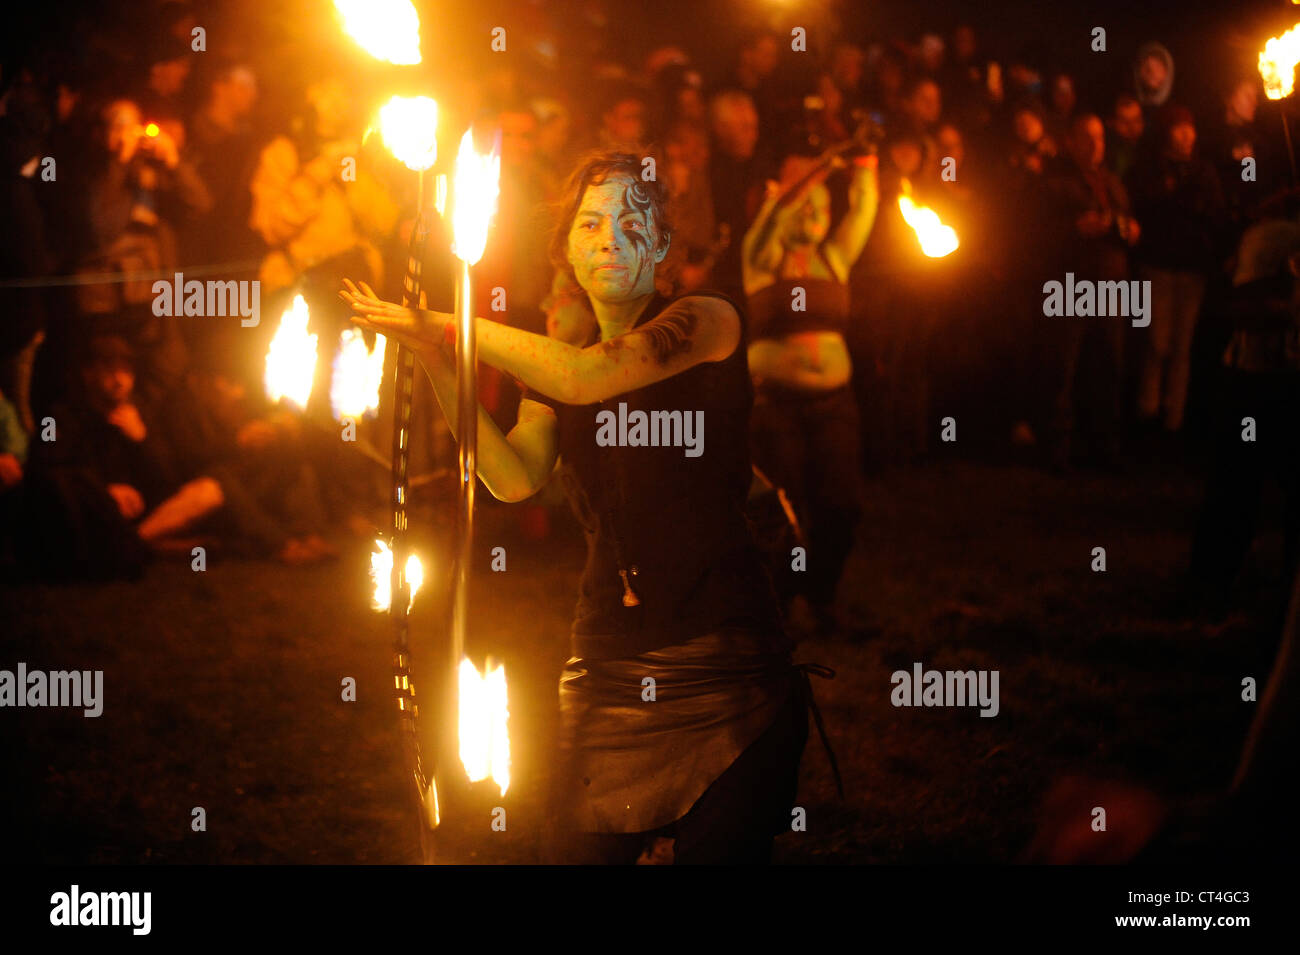 Performers take part in the annual Beltane Fire Festival on Calton Hill, Edinburgh, Scotland. - Stock Image